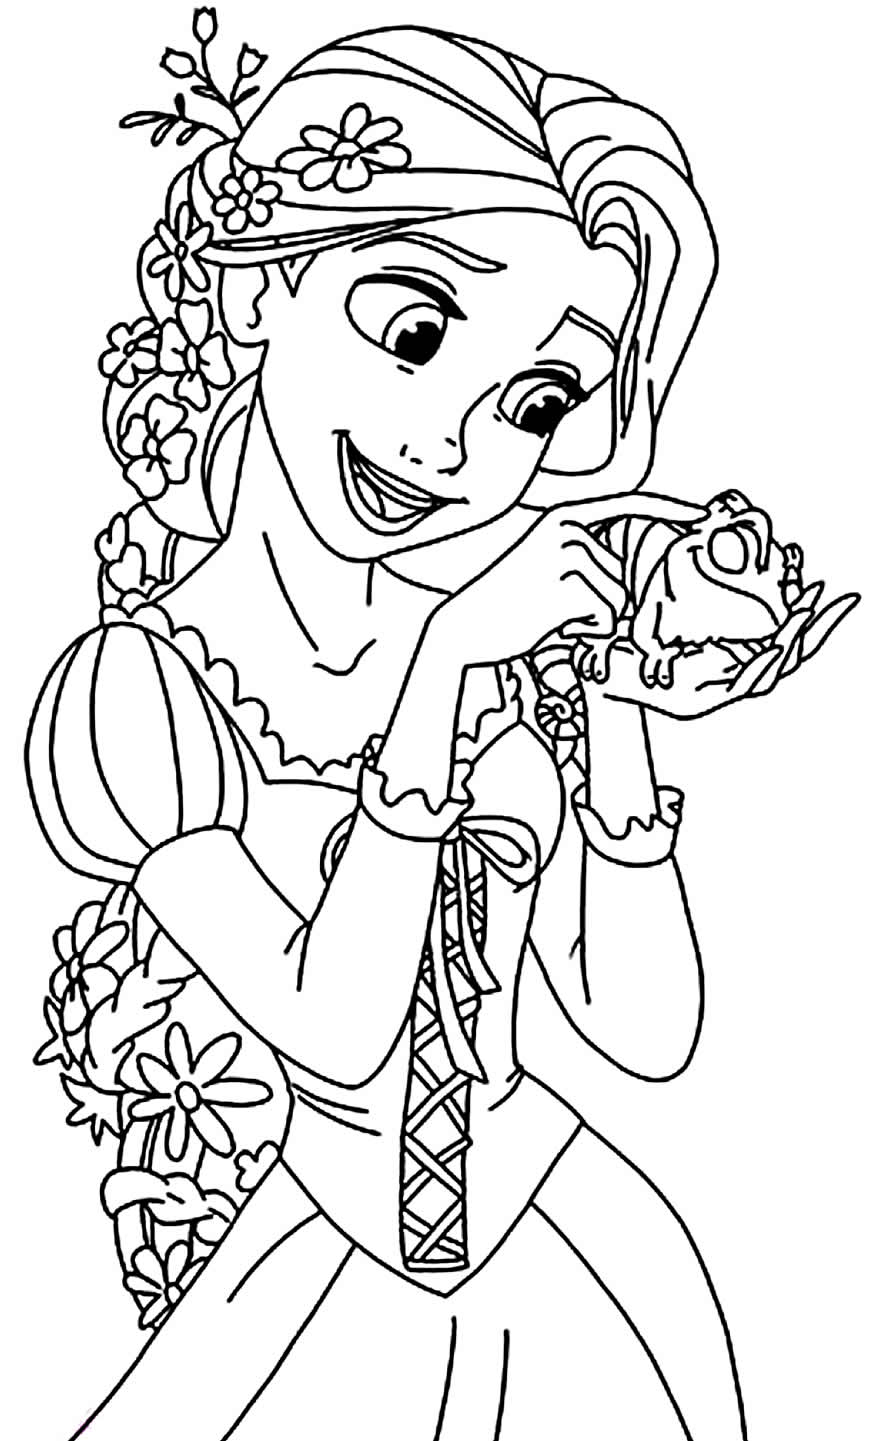 tangled pictures to colour free printable tangled coloring pages for kids cool2bkids pictures colour to tangled